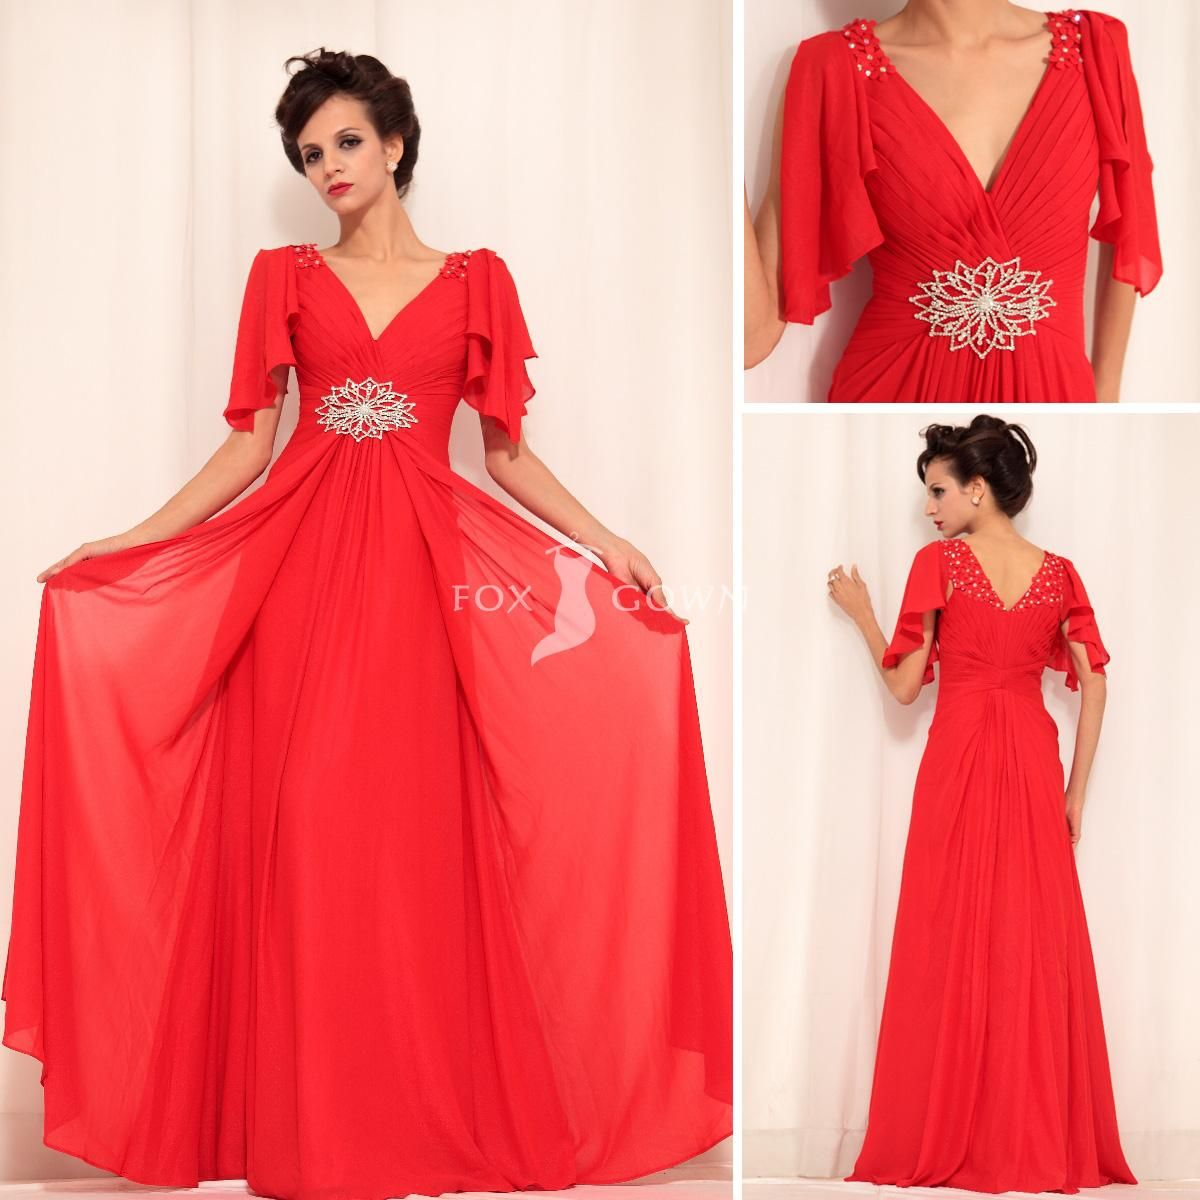 Plus size bridesmaid dresses with sleeves google search plus size bridesmaid dresses with sleeves google search ombrellifo Image collections